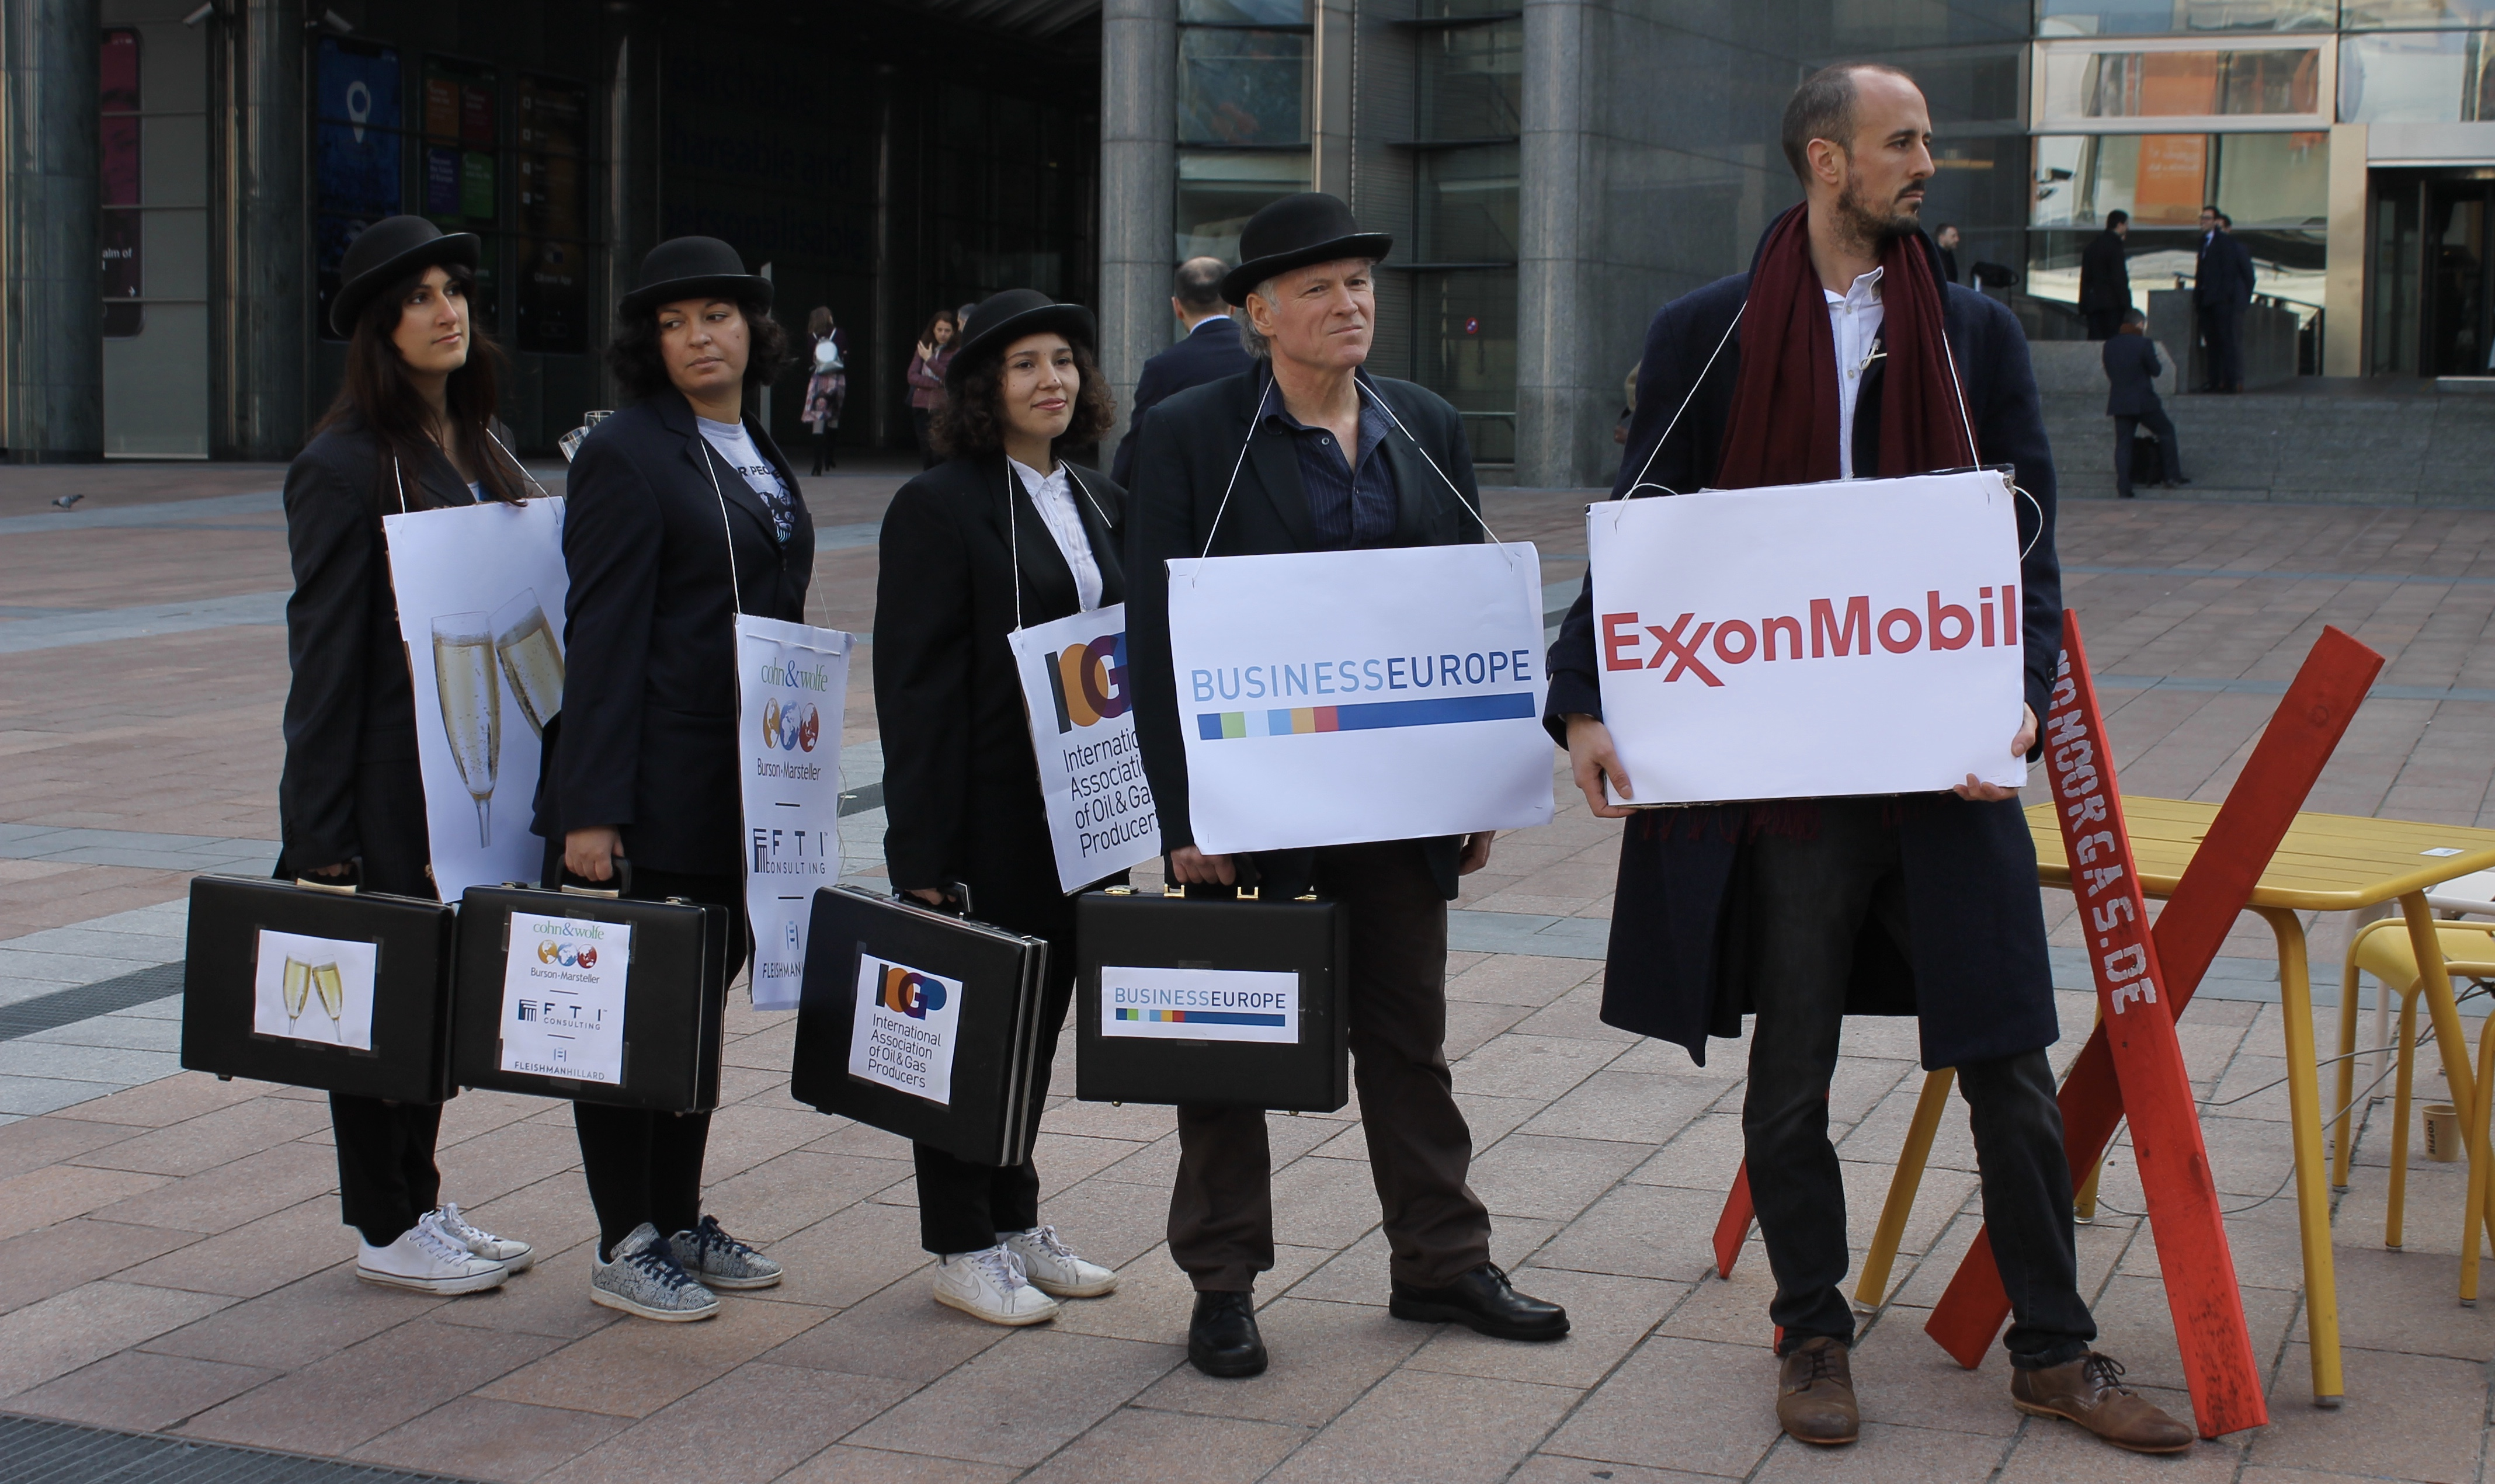 Exxon and its lobby groups